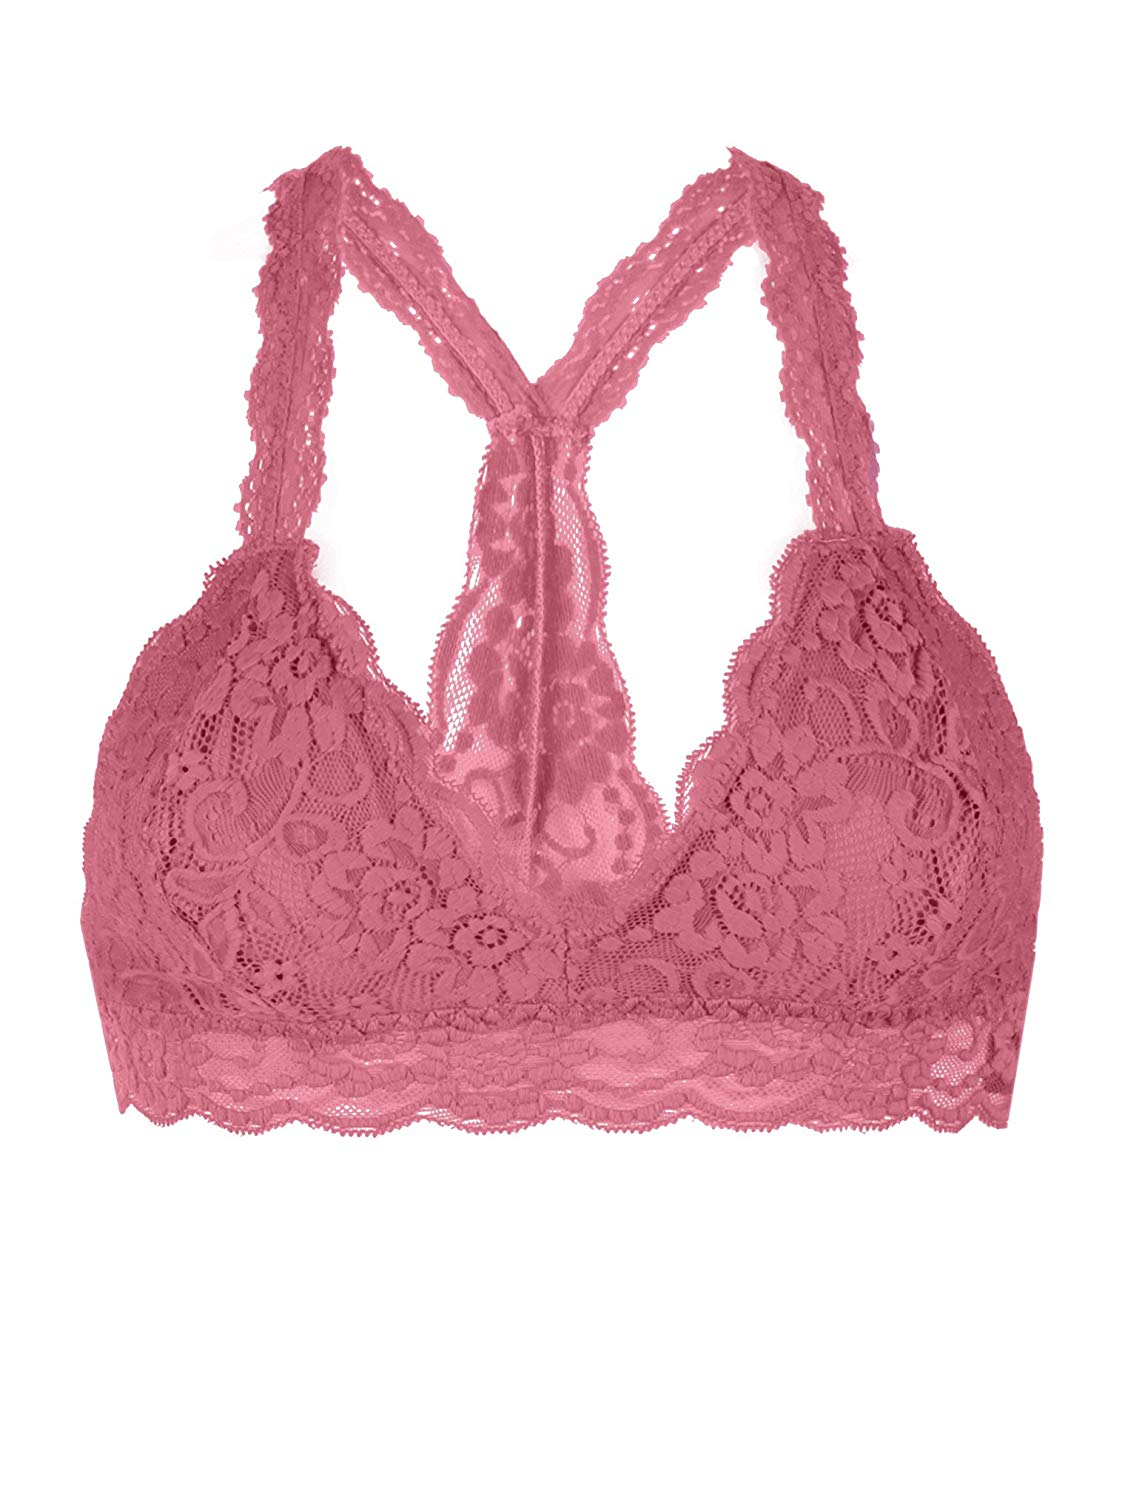 c541ab531 Get Quotations · Floral Lace Racerback Unpadded Bralette Top Sheer Bustier  Crop Wireless Lingerie Bra S Mauve